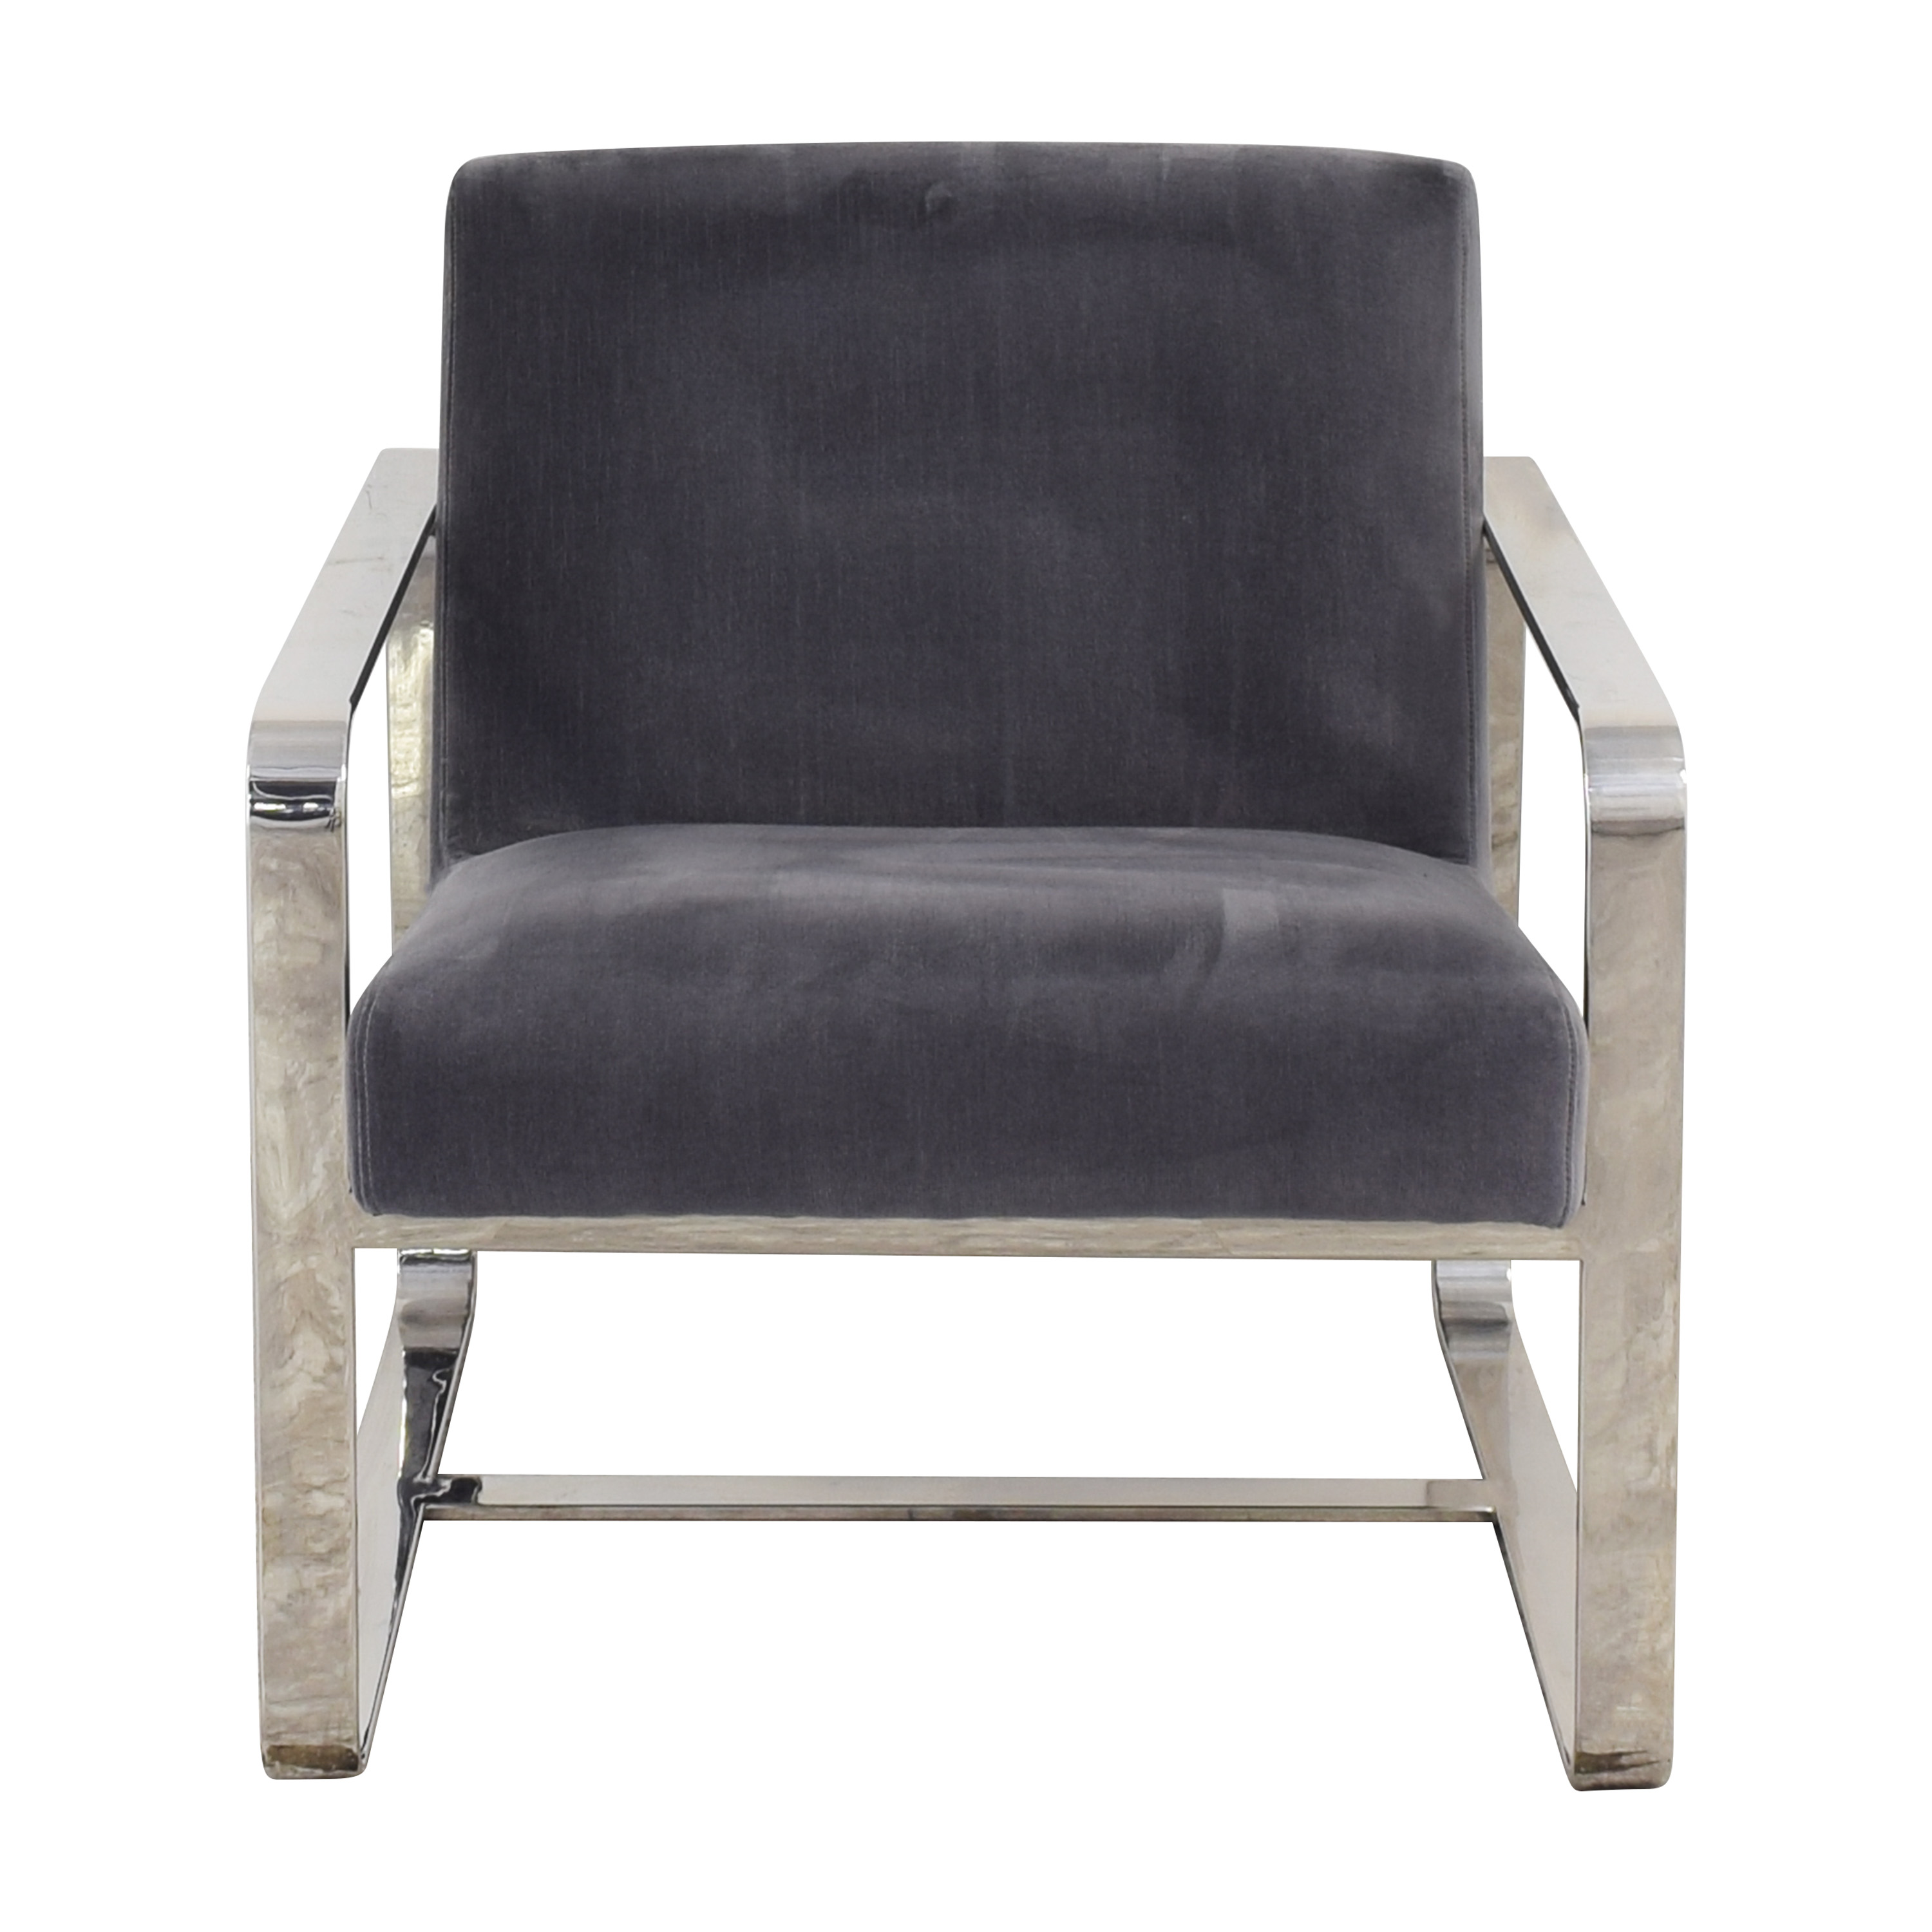 Restoration Hardware Restoration Hardware Miles Chair grey and silver